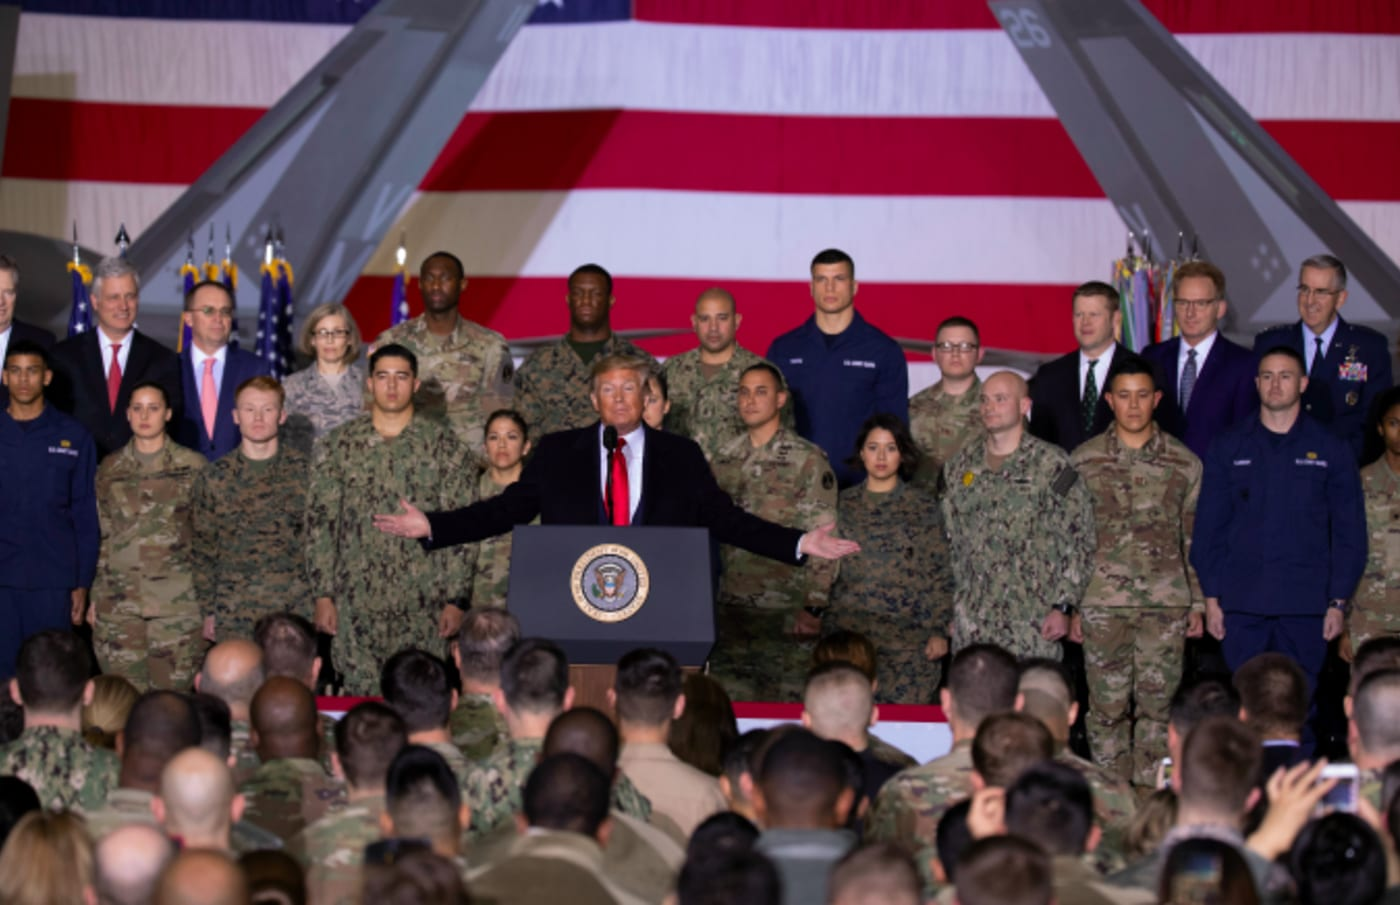 US President Donald Trump speaks at the signing ceremony for S.1709